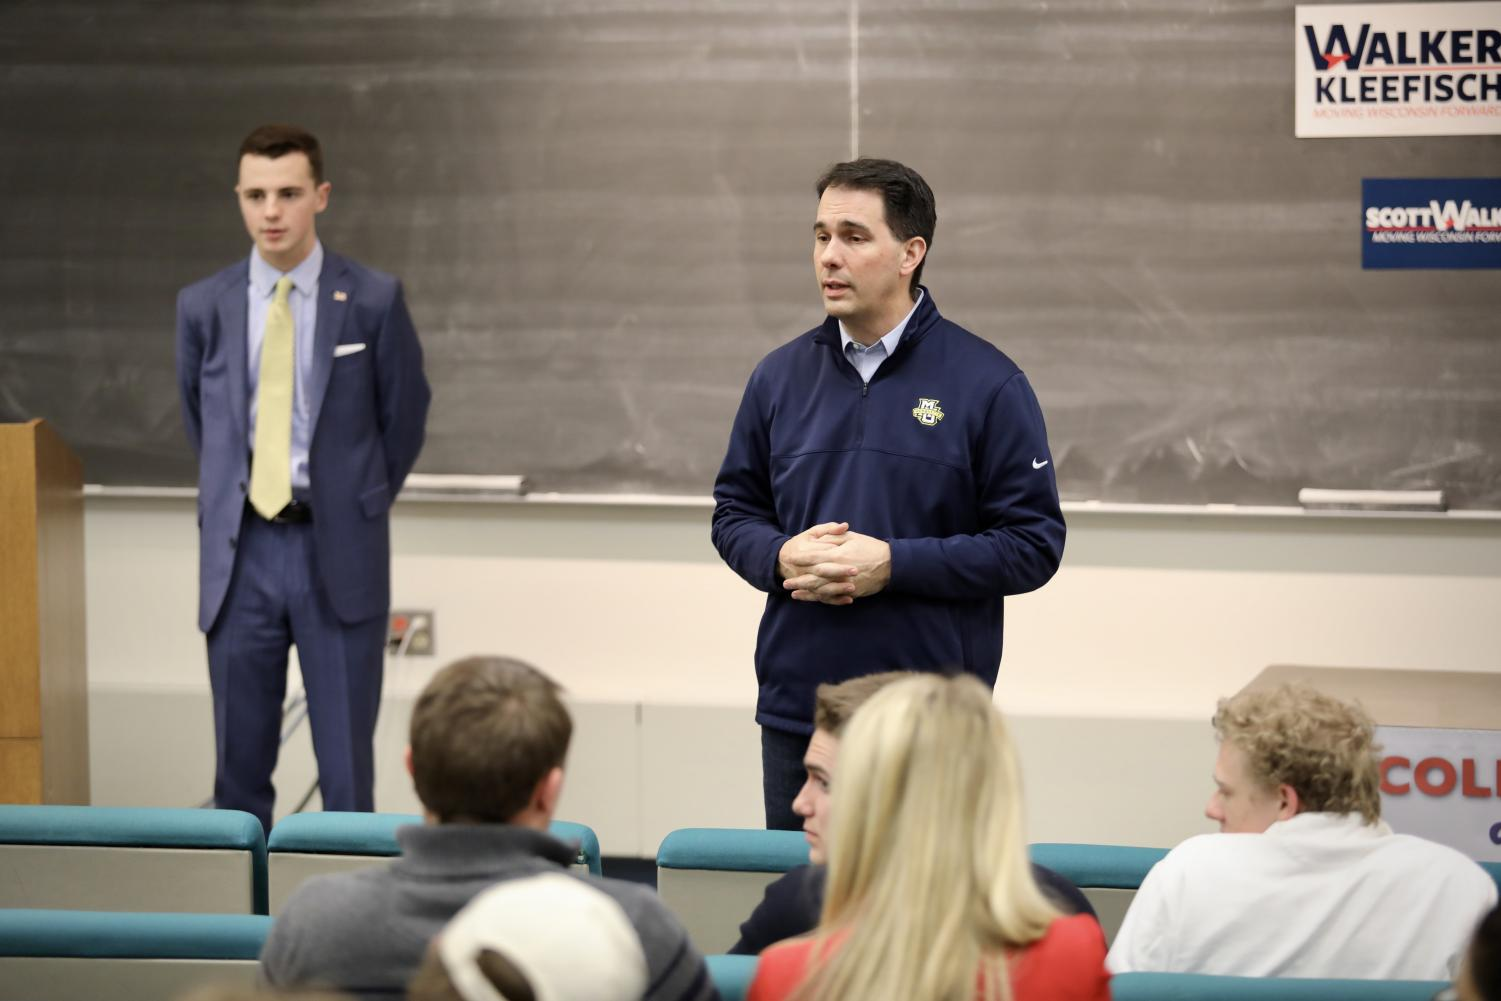 Wisconsin Gov. Scott Walker talks during an event hosted by the College Republicans.